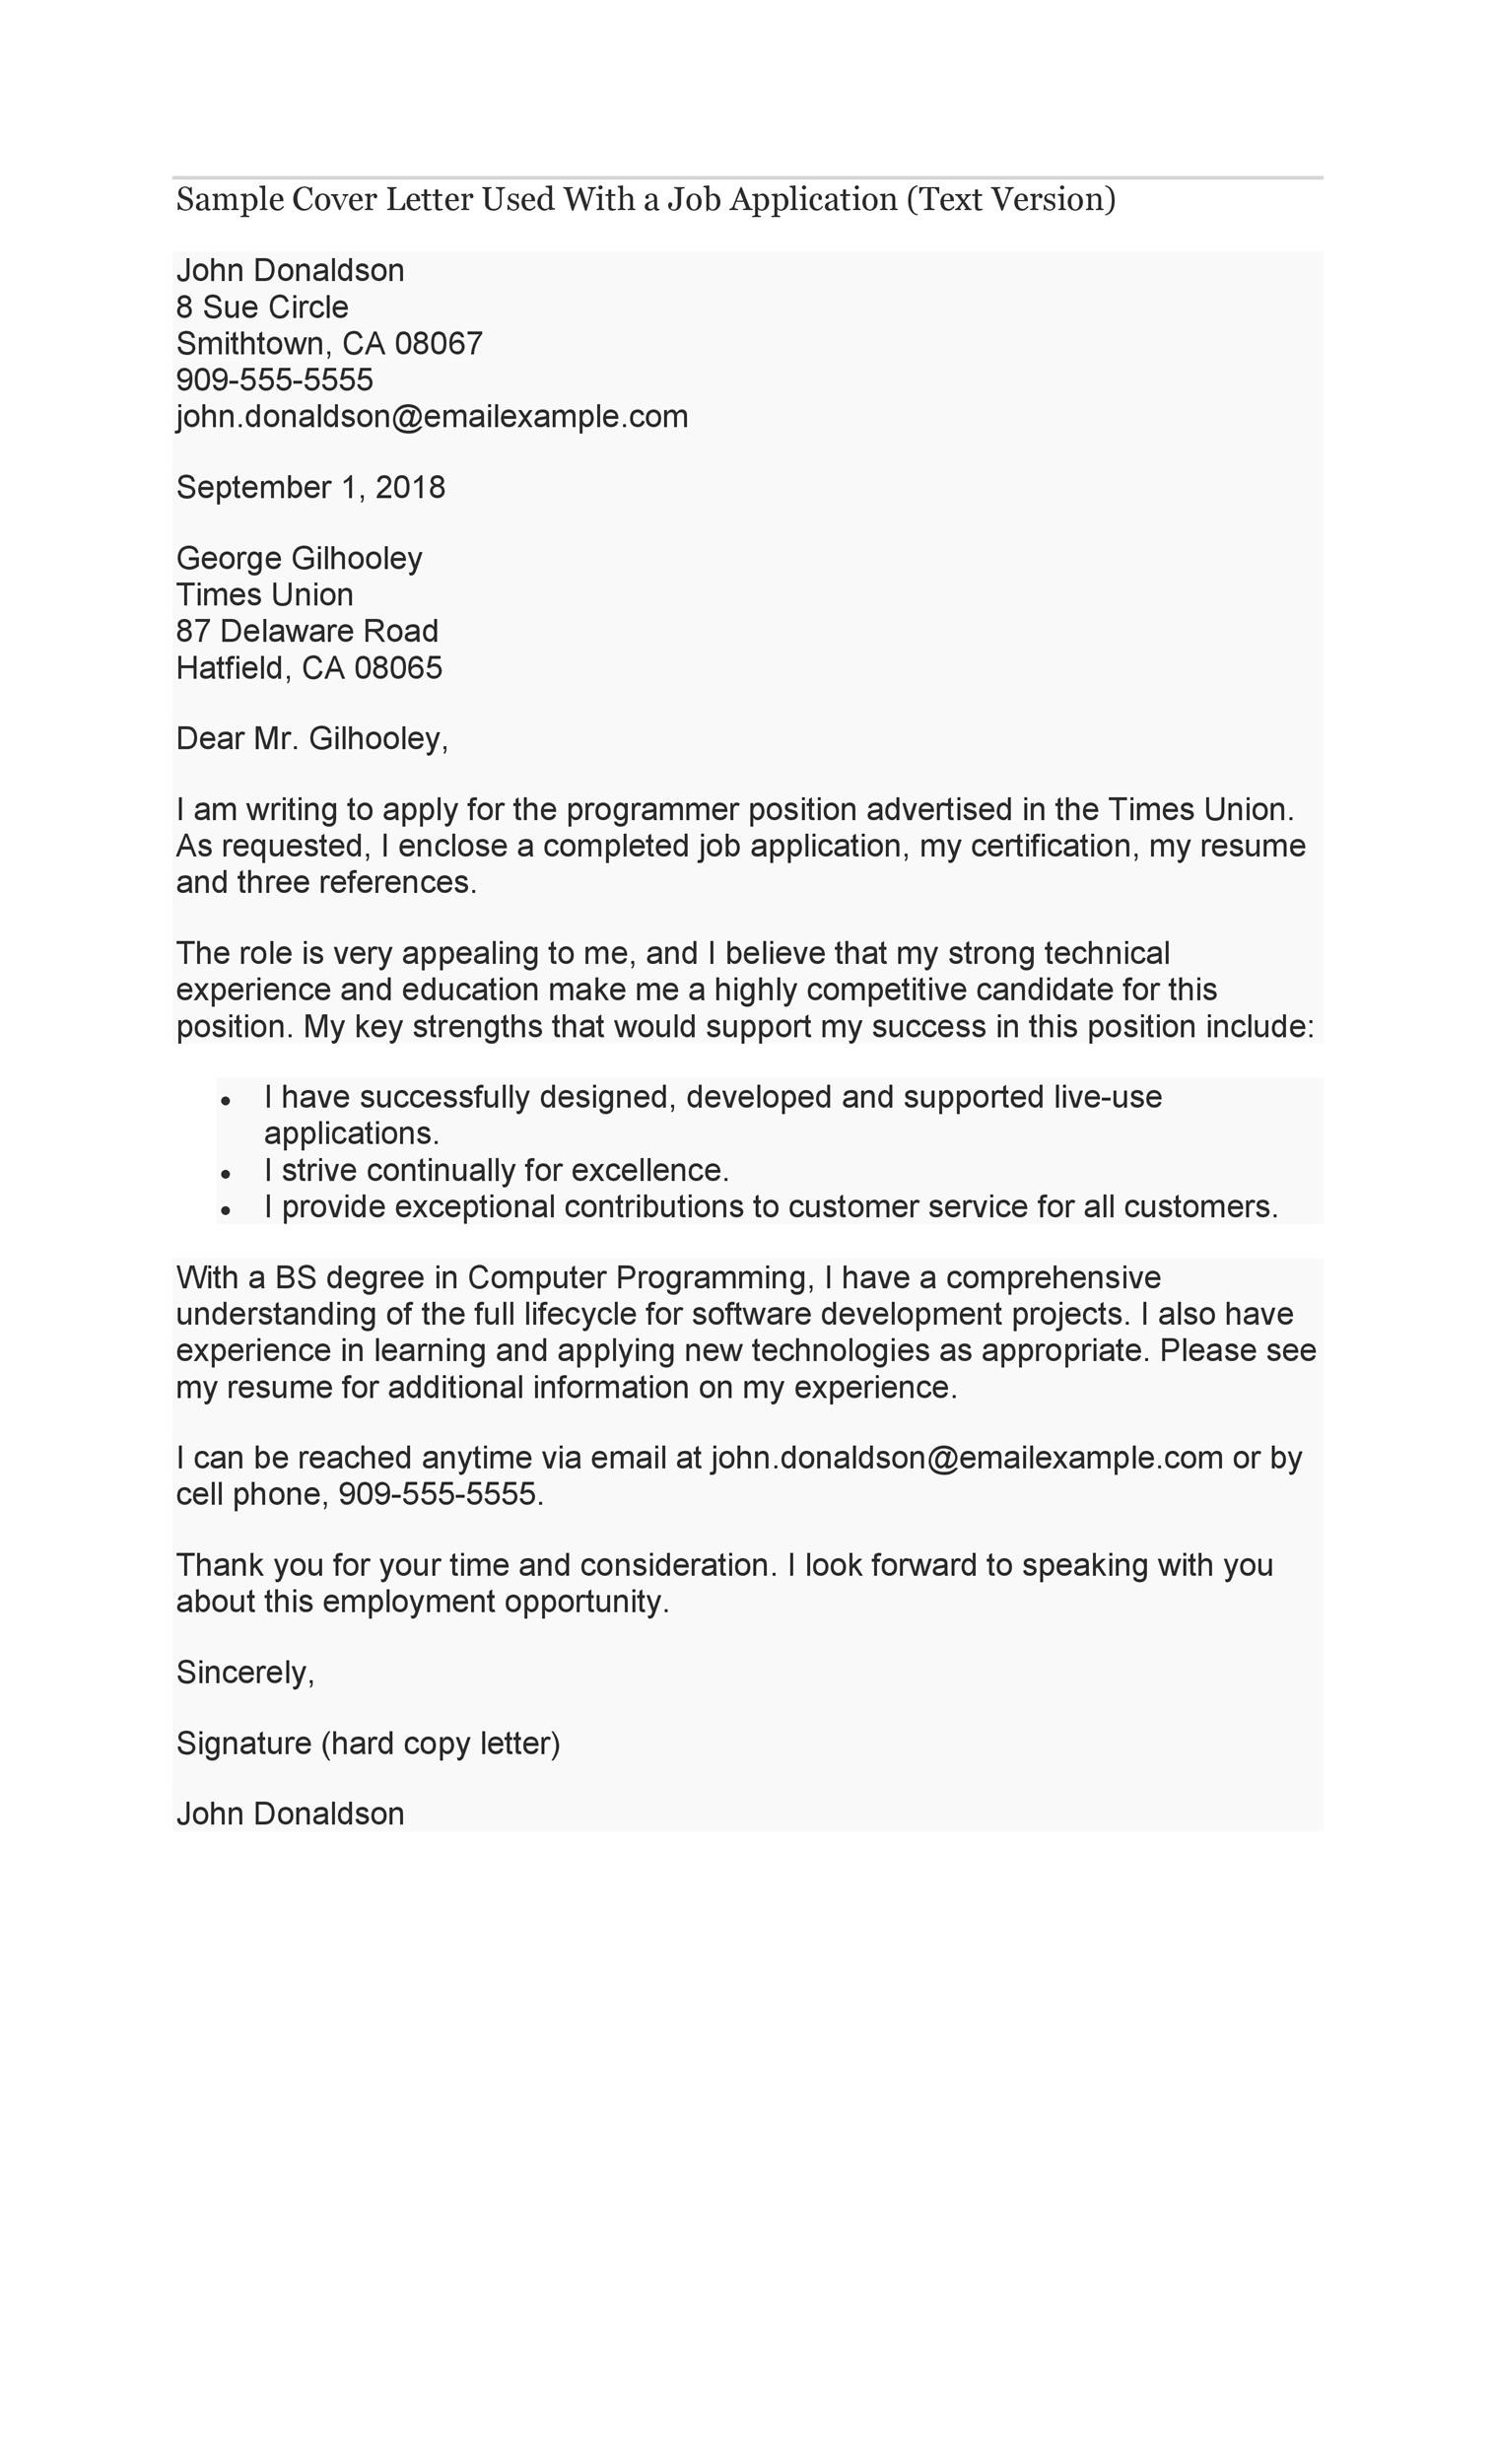 A Letter Of Application from templatelab.com